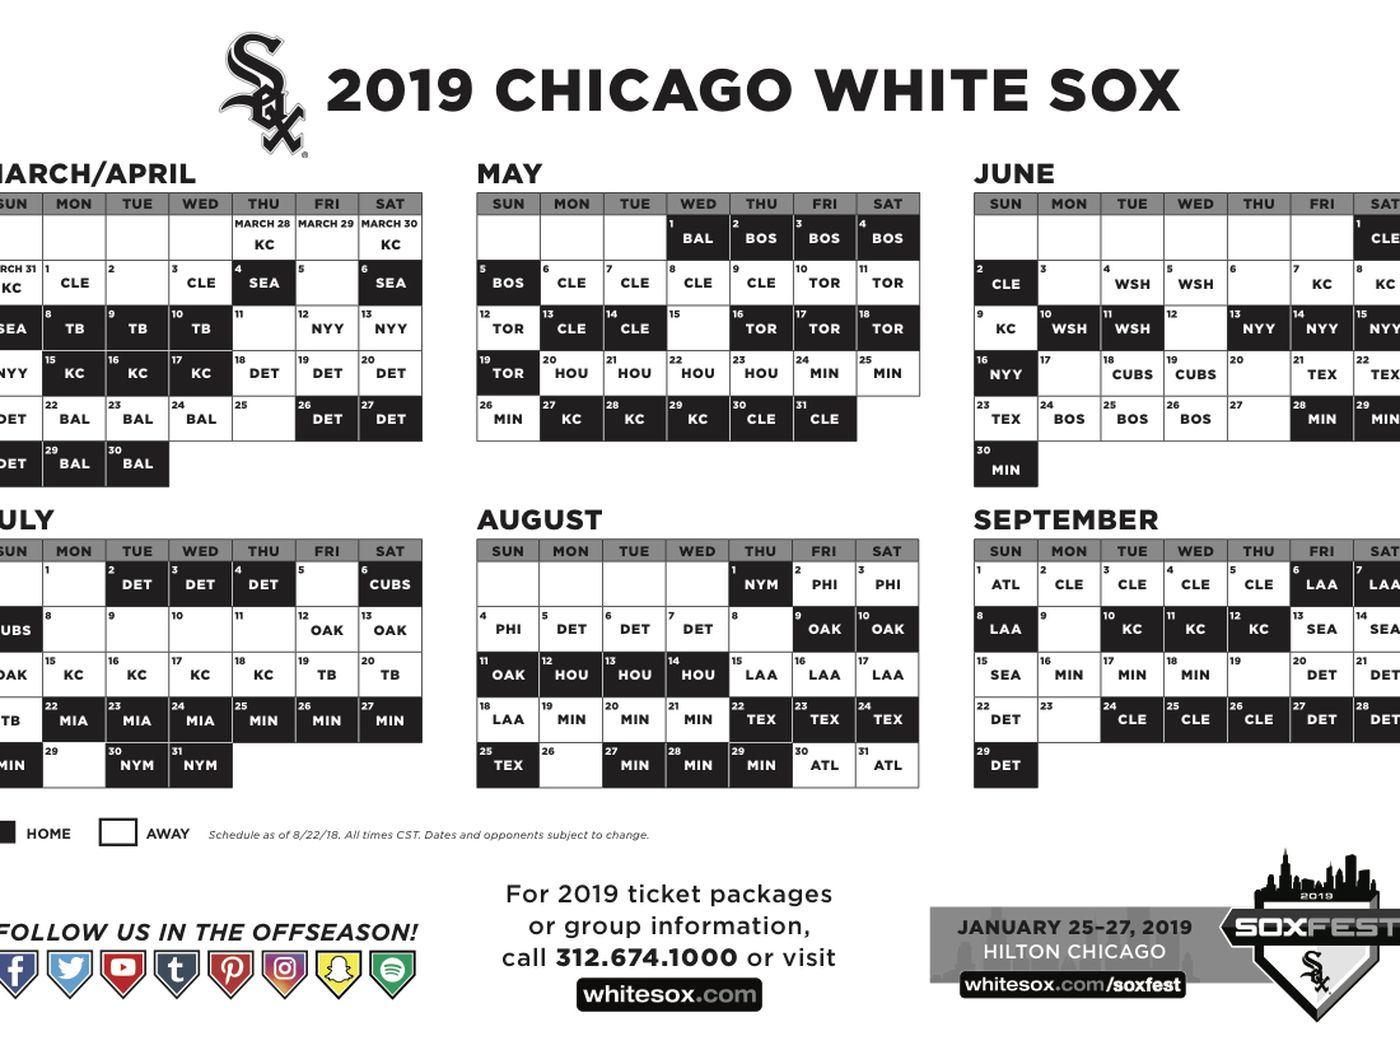 white sox release 2019 schedule, with a home opener vs. seattle